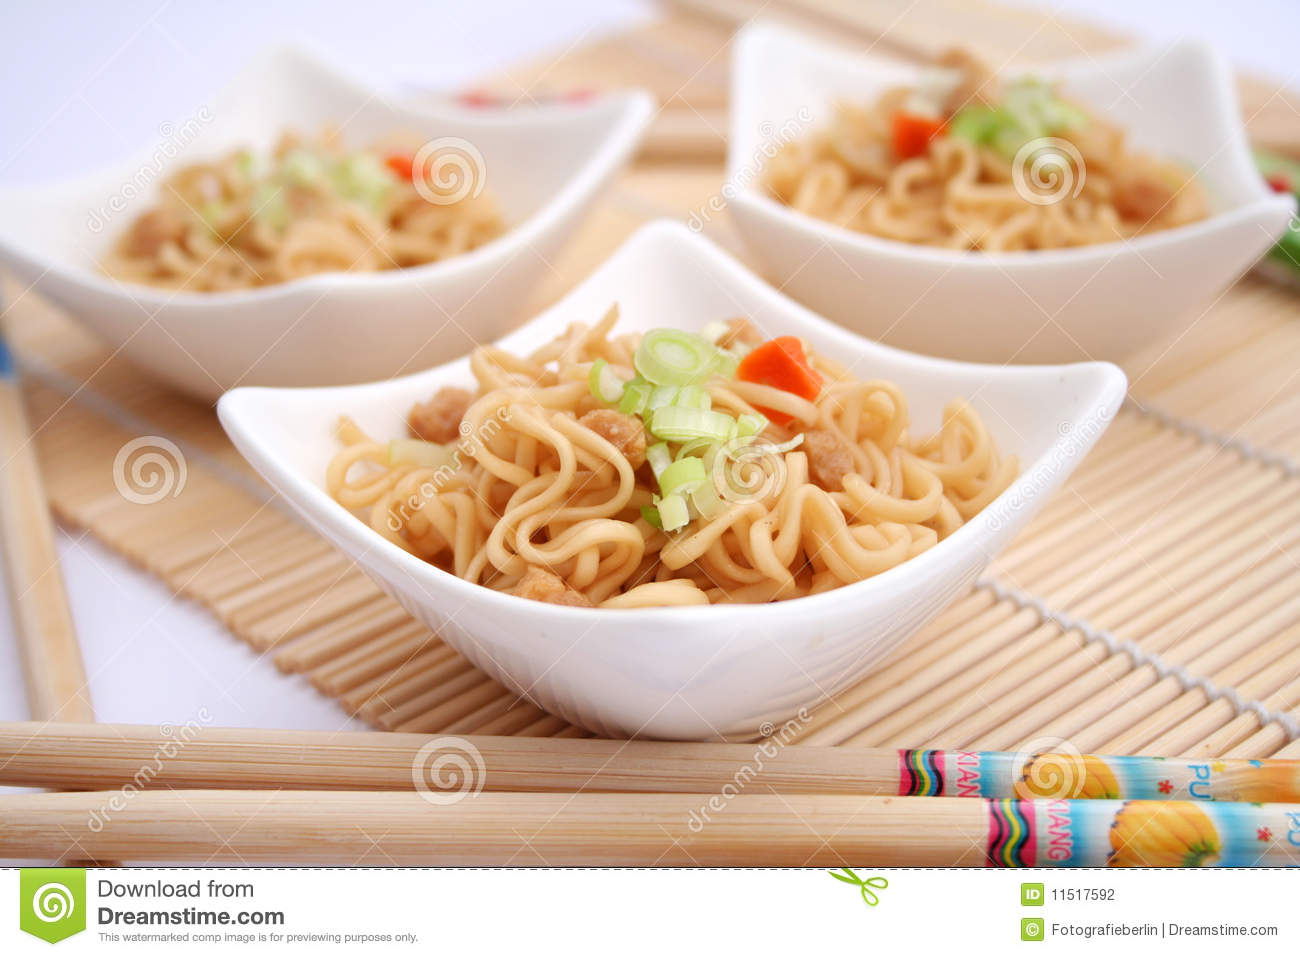 Asian food stock photography image 11517592 for 7 spices asian cuisine